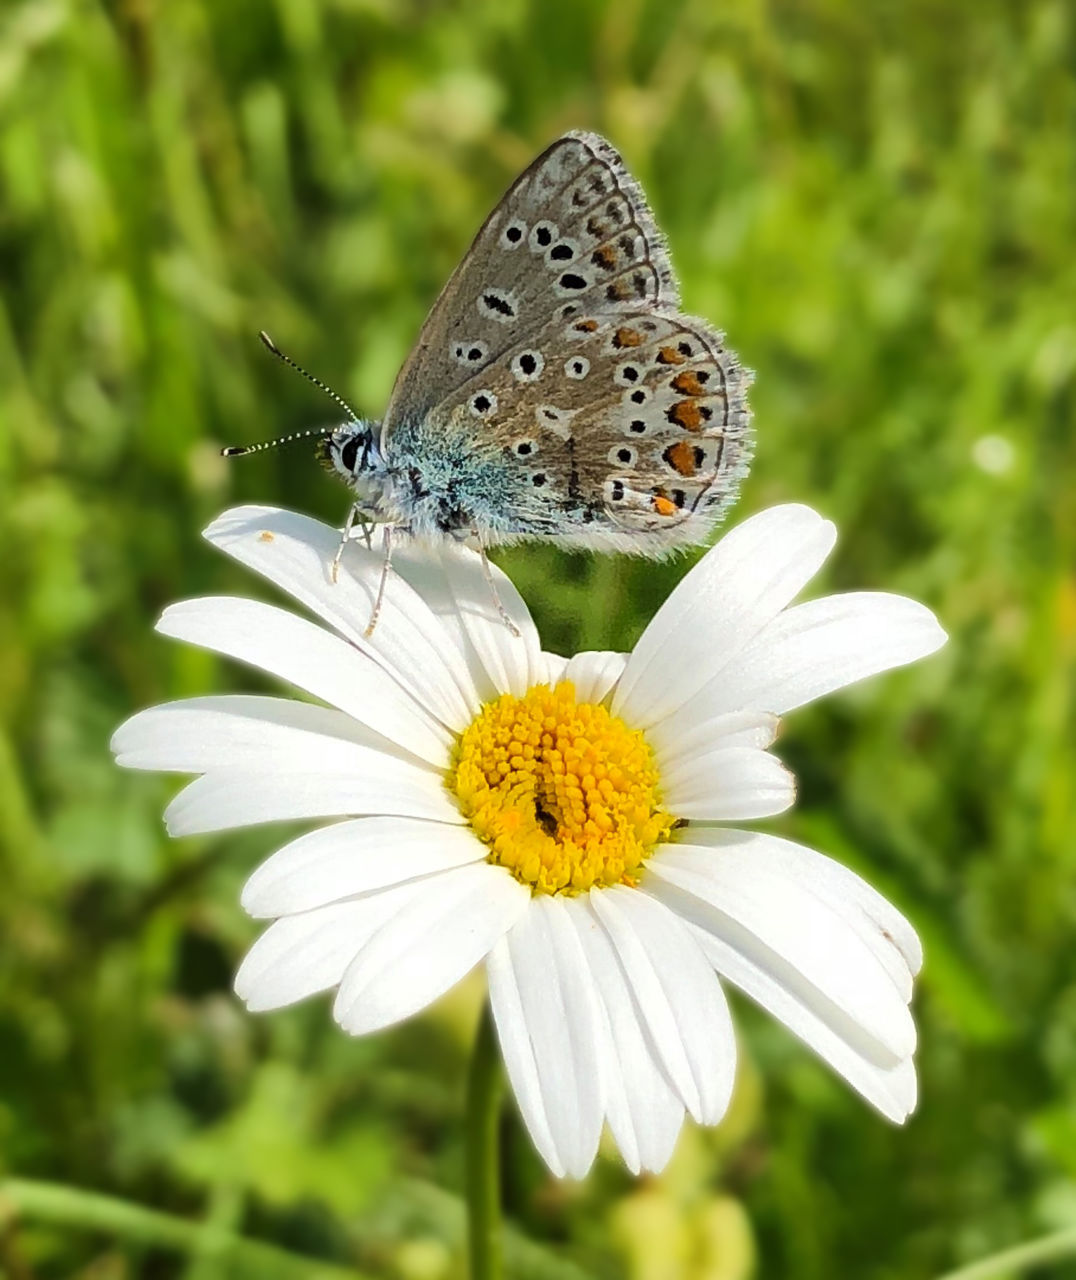 flower, flowering plant, insect, plant, beauty in nature, fragility, invertebrate, vulnerability, petal, flower head, animal wildlife, animals in the wild, freshness, animal themes, one animal, growth, animal, inflorescence, animal wing, butterfly - insect, pollen, no people, pollination, butterfly